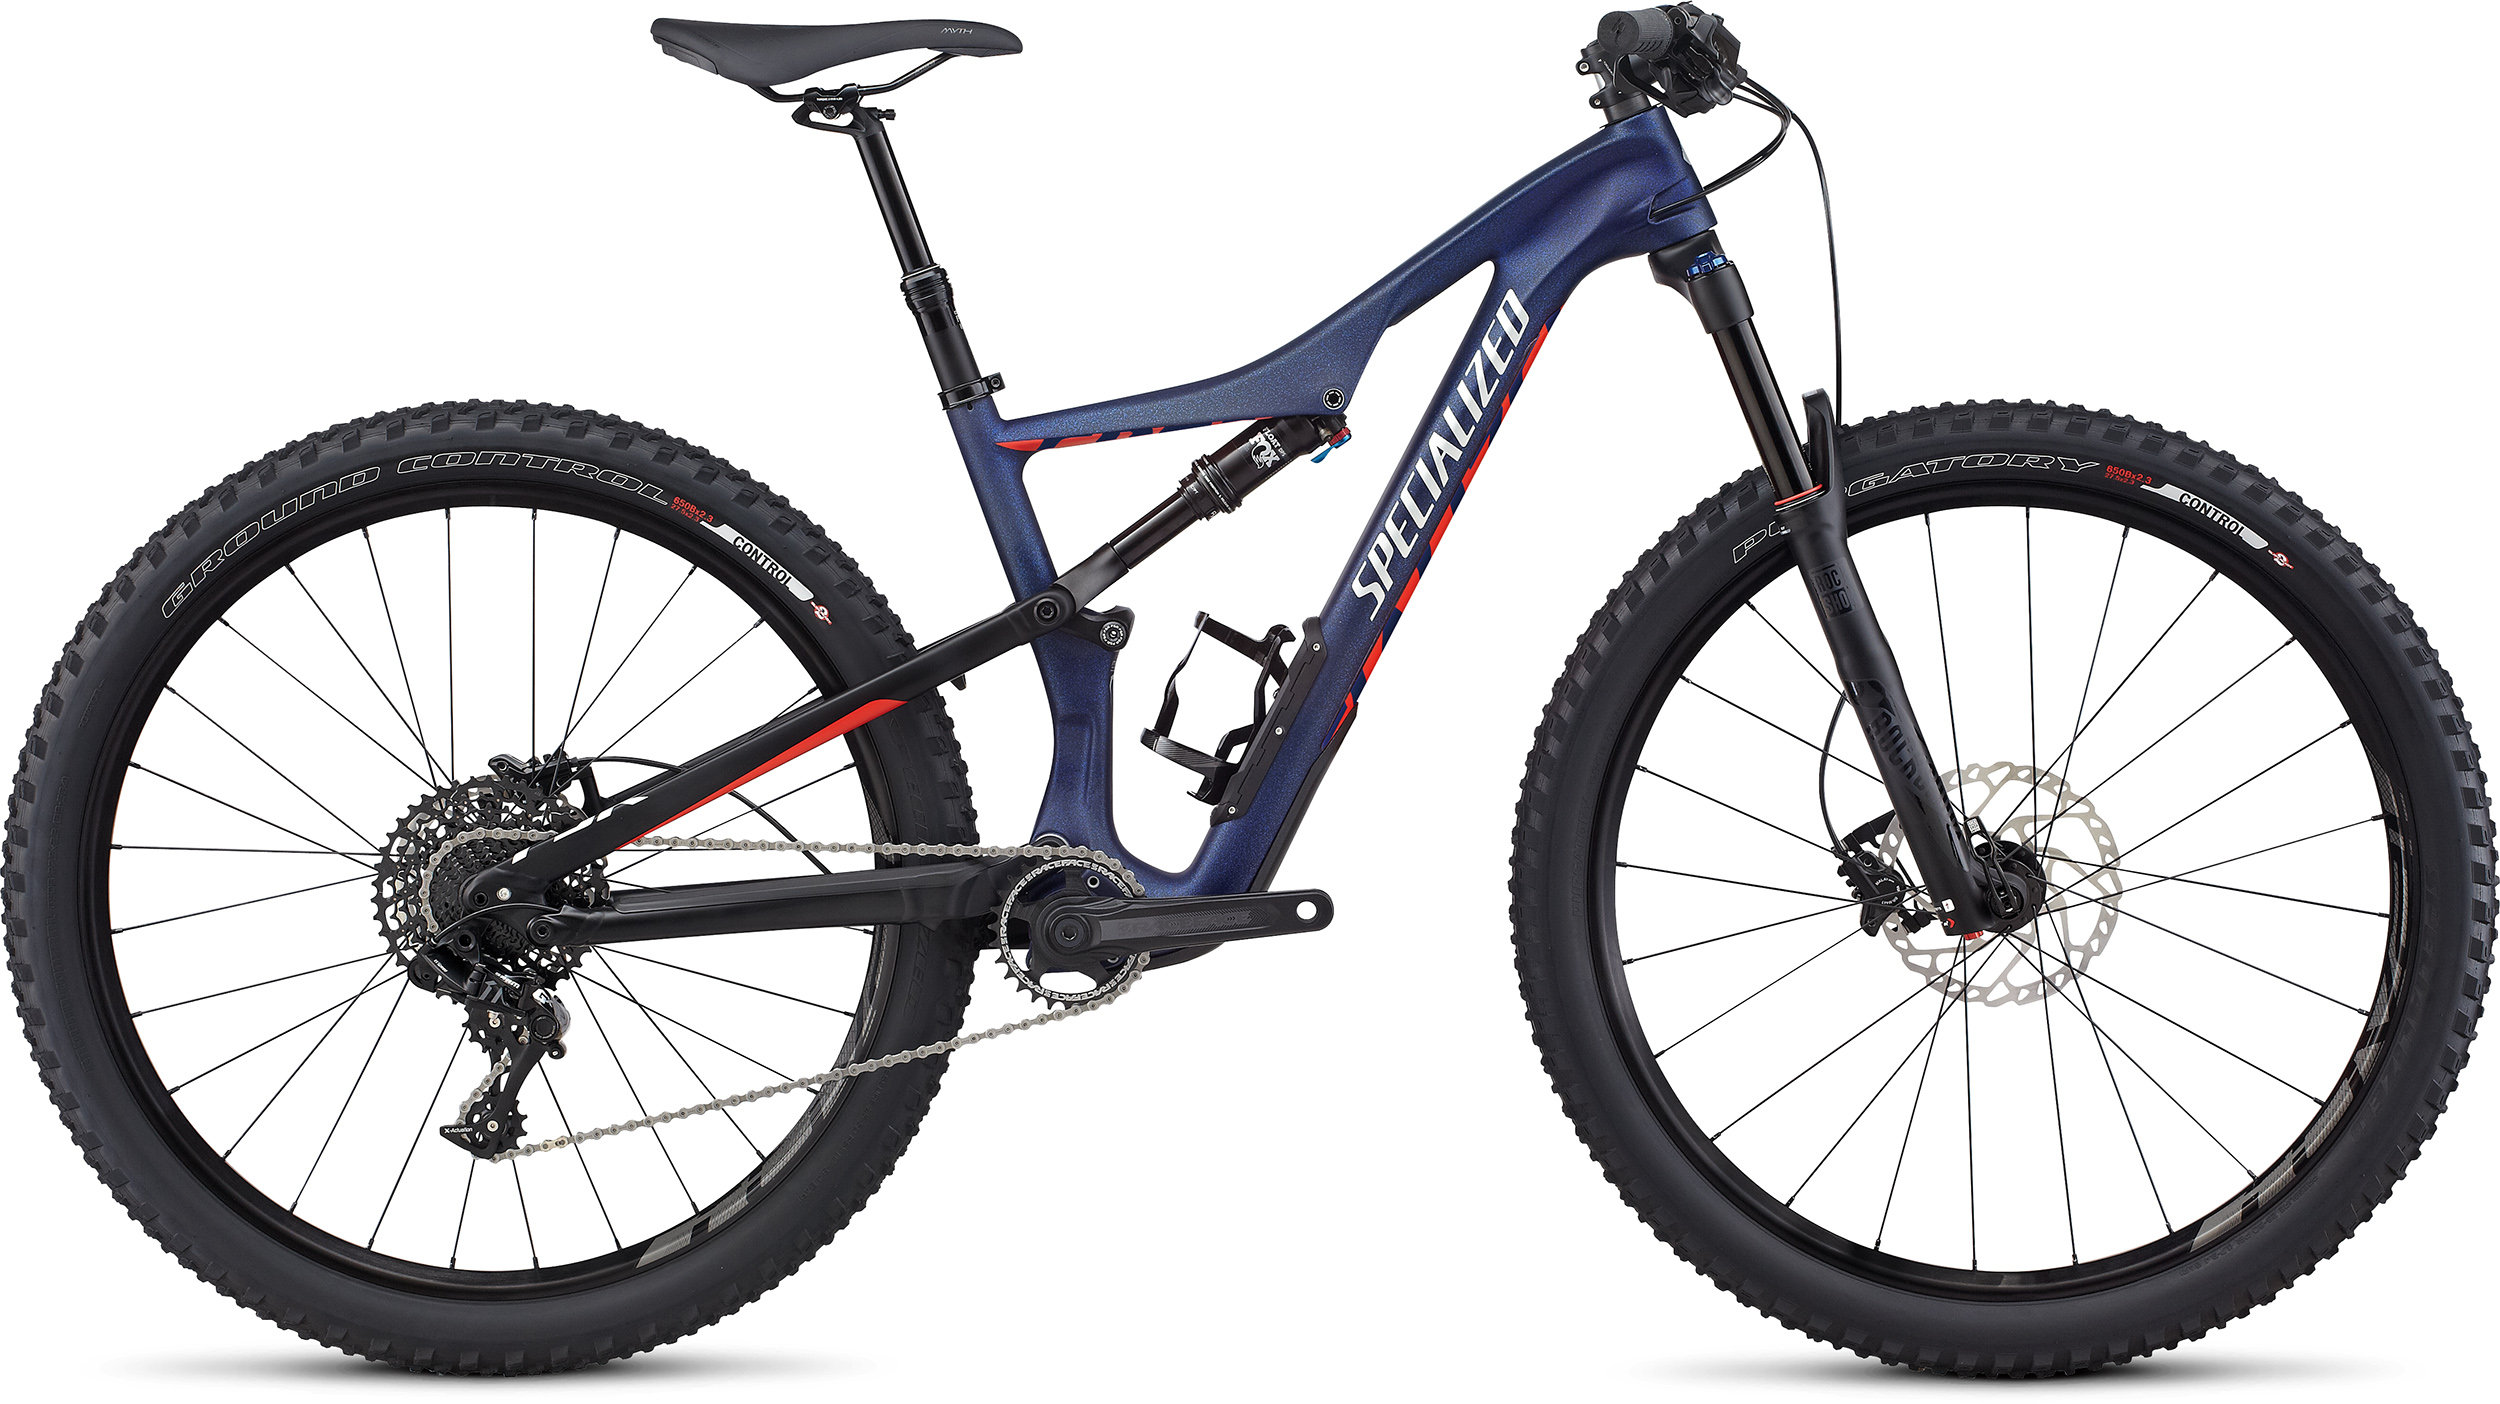 SPECIALIZED CAMBER WMN FSR COMP CARBON 650B NBLBLU/NRDCRED/FLKSIL L - Bike Zone